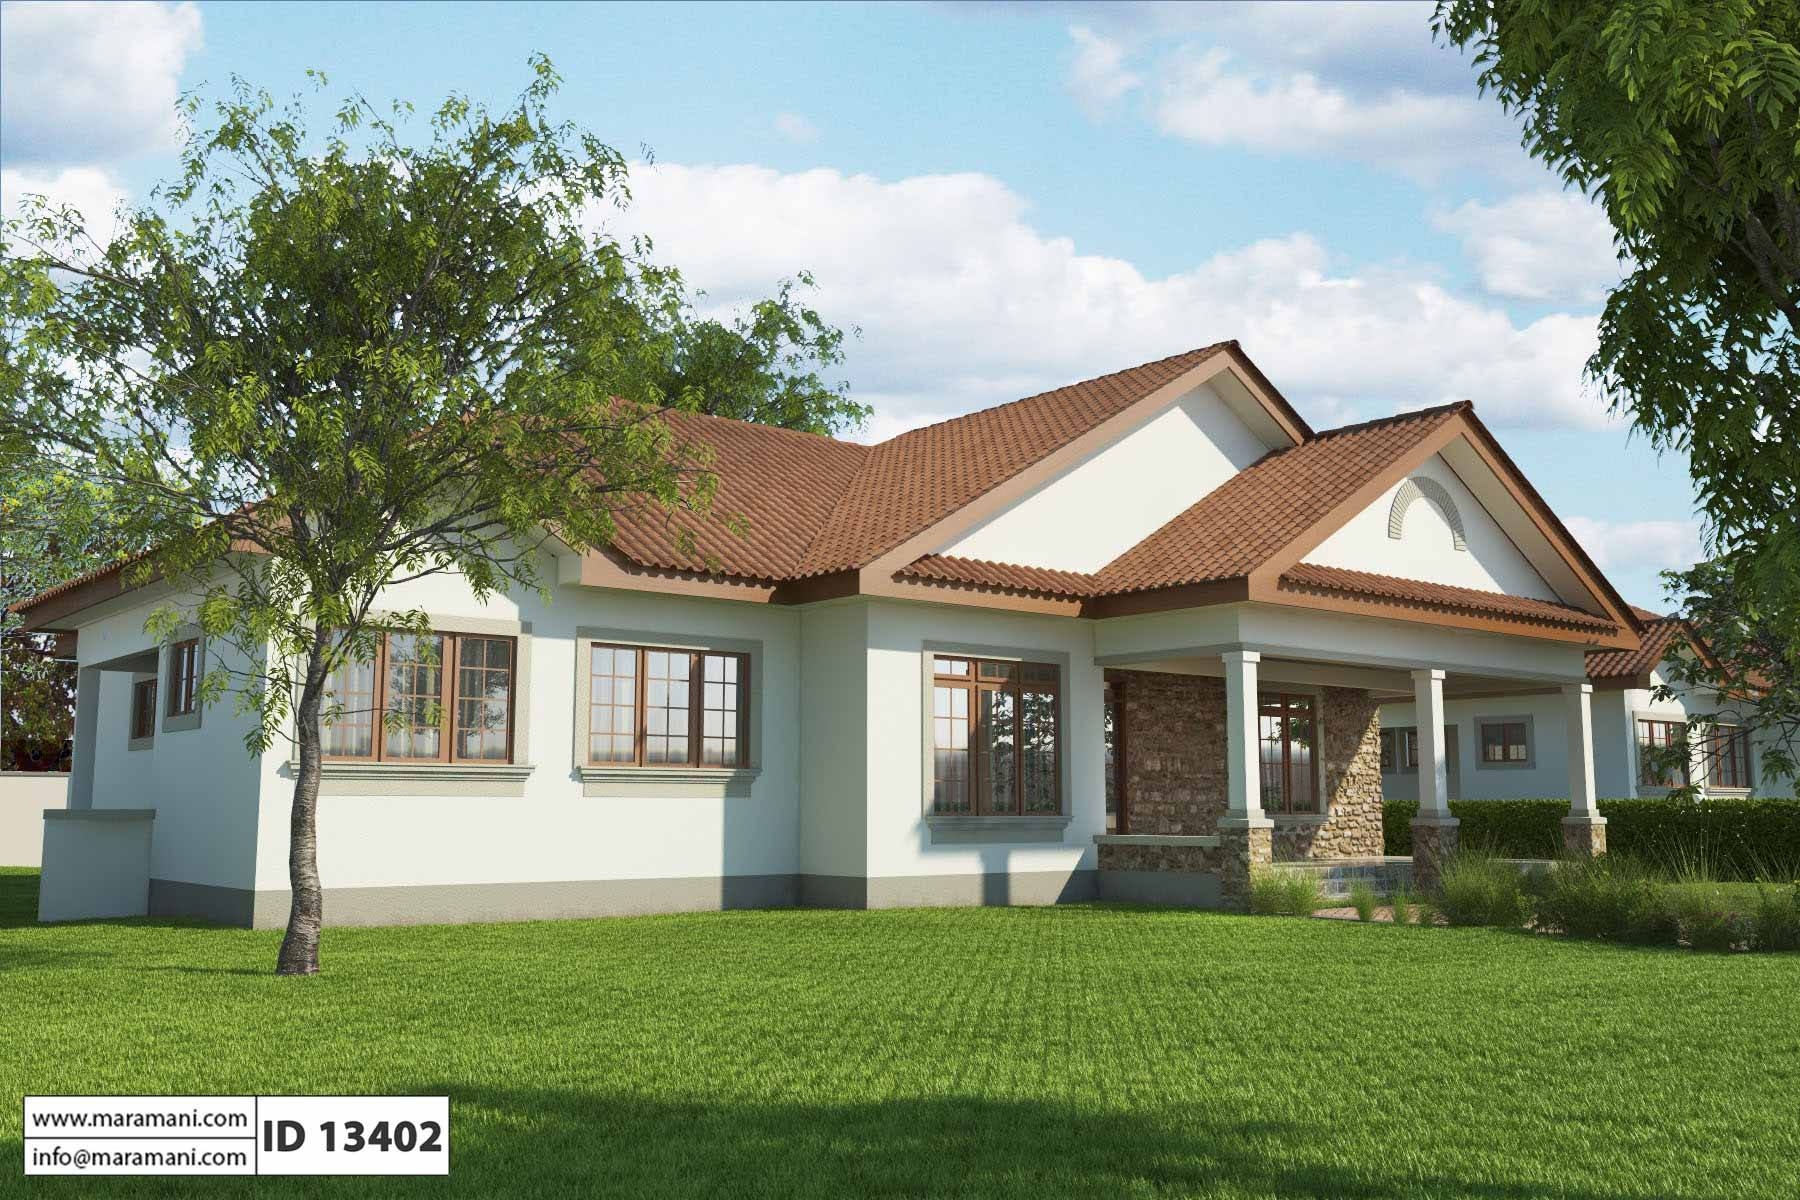 Simple 3 bedroom house plan id 13402 house designs by for Looking for a 4 bedroom